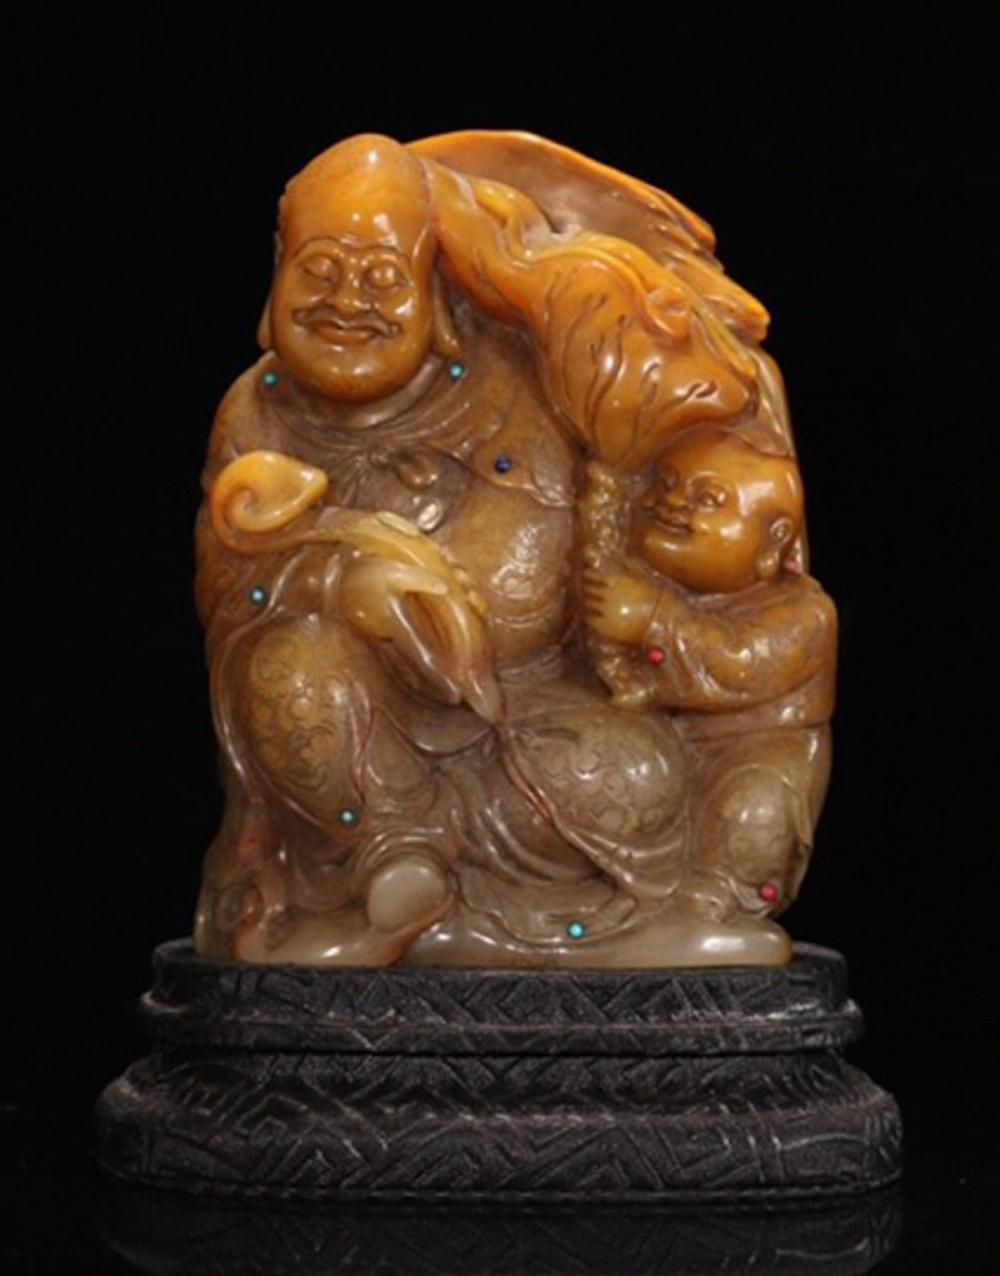 A TIANHUANG STONE CHARACTERS CARVED ORNAMENT